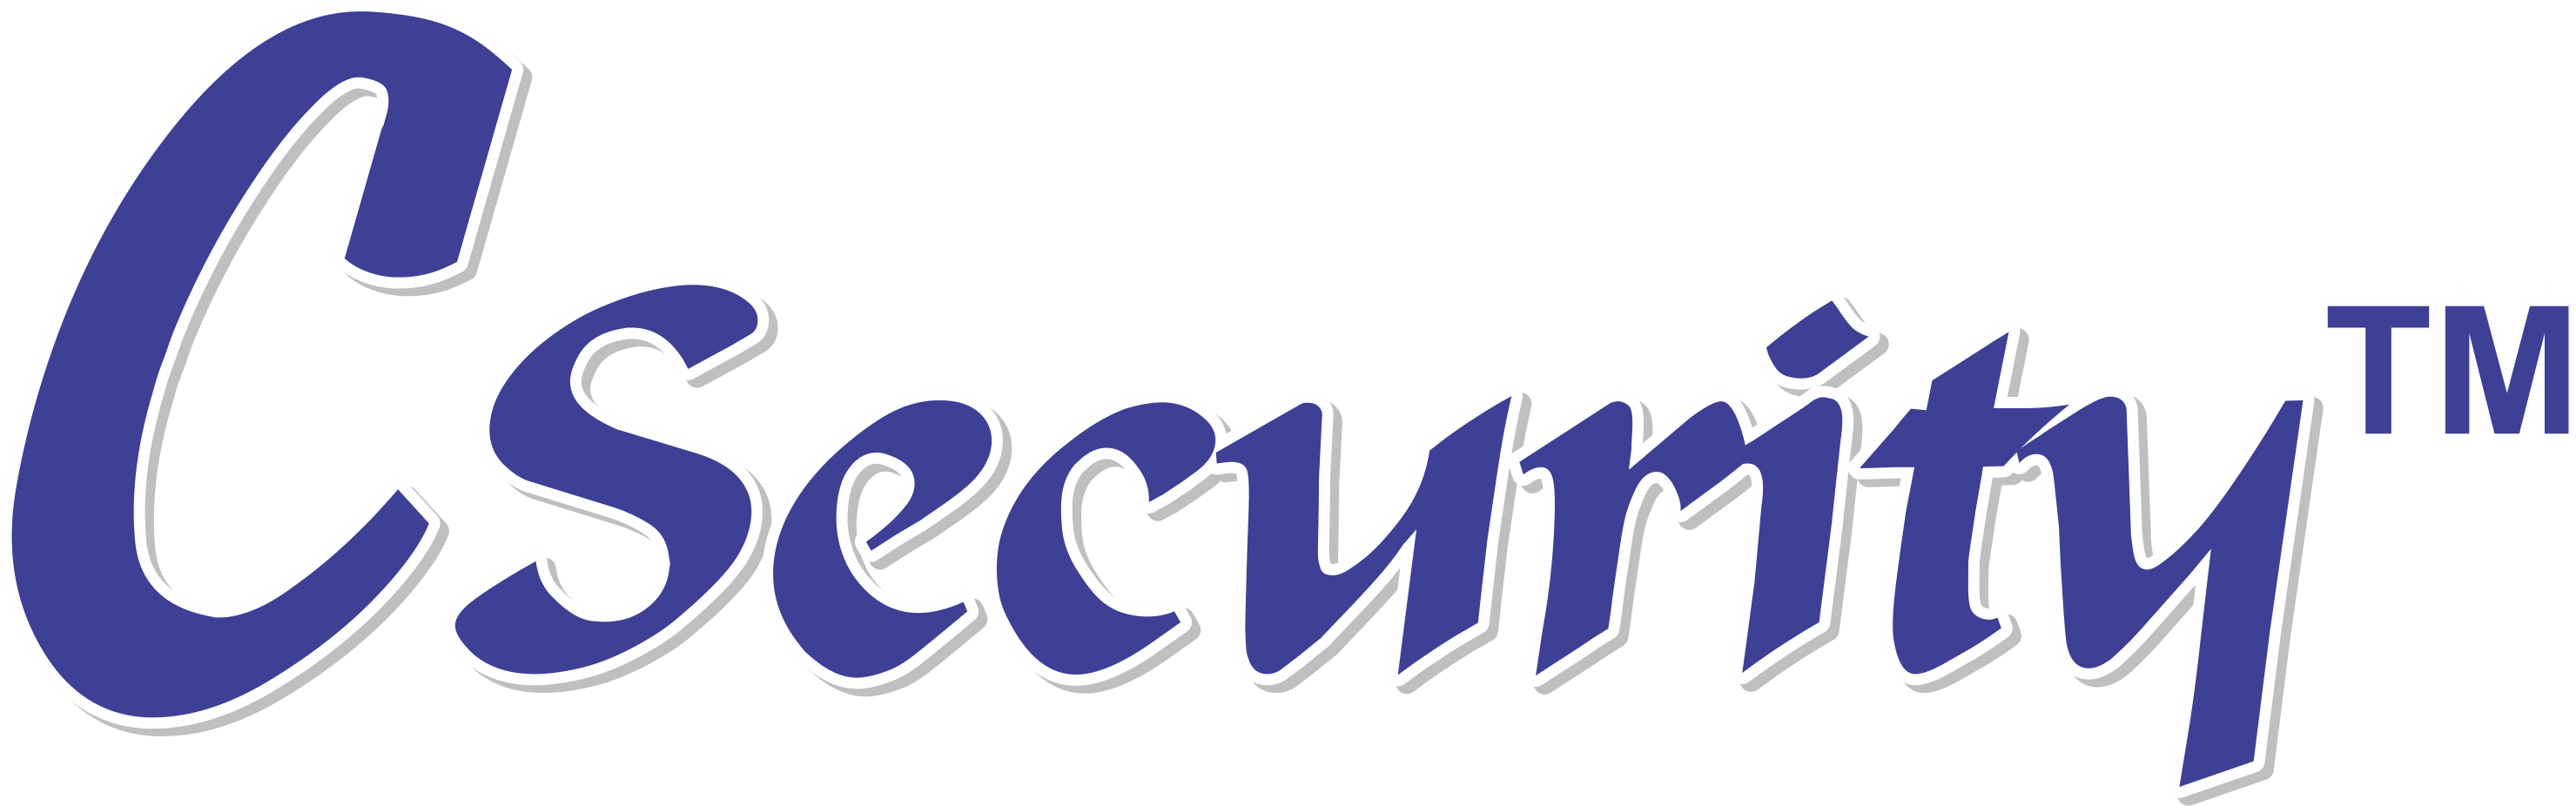 Crest Secure